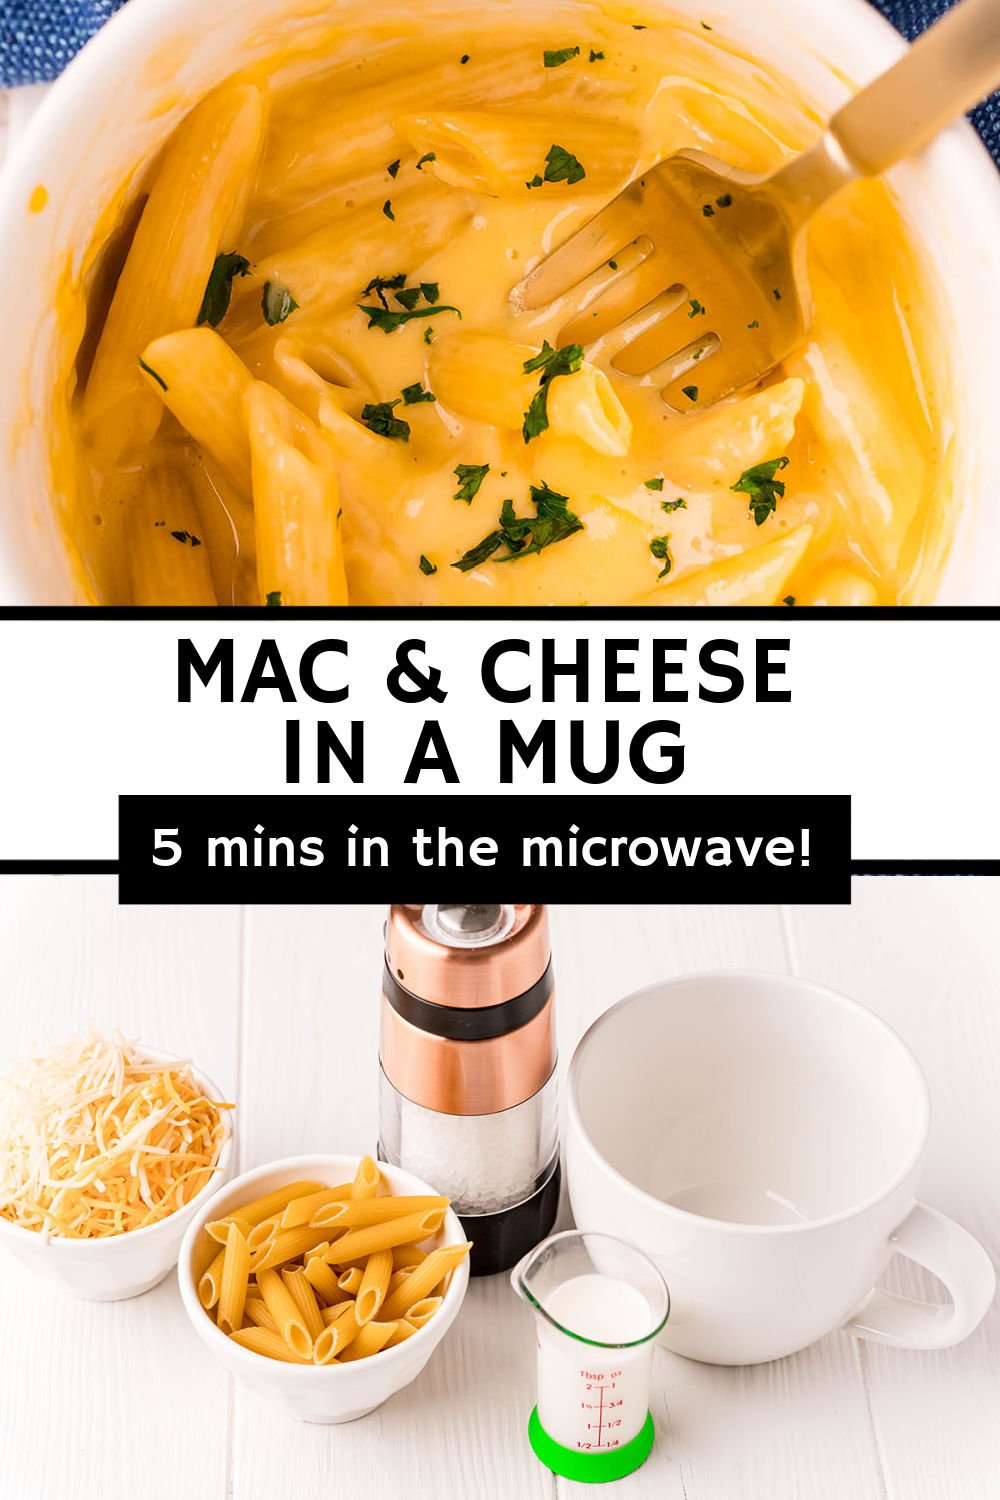 Short on time but want macaroni and cheese? This Mac and Cheese in a Mug takes only FIVE minutes to make in the microwave and will satisfy all cheesy cravings! | www.persnicketyplates.com